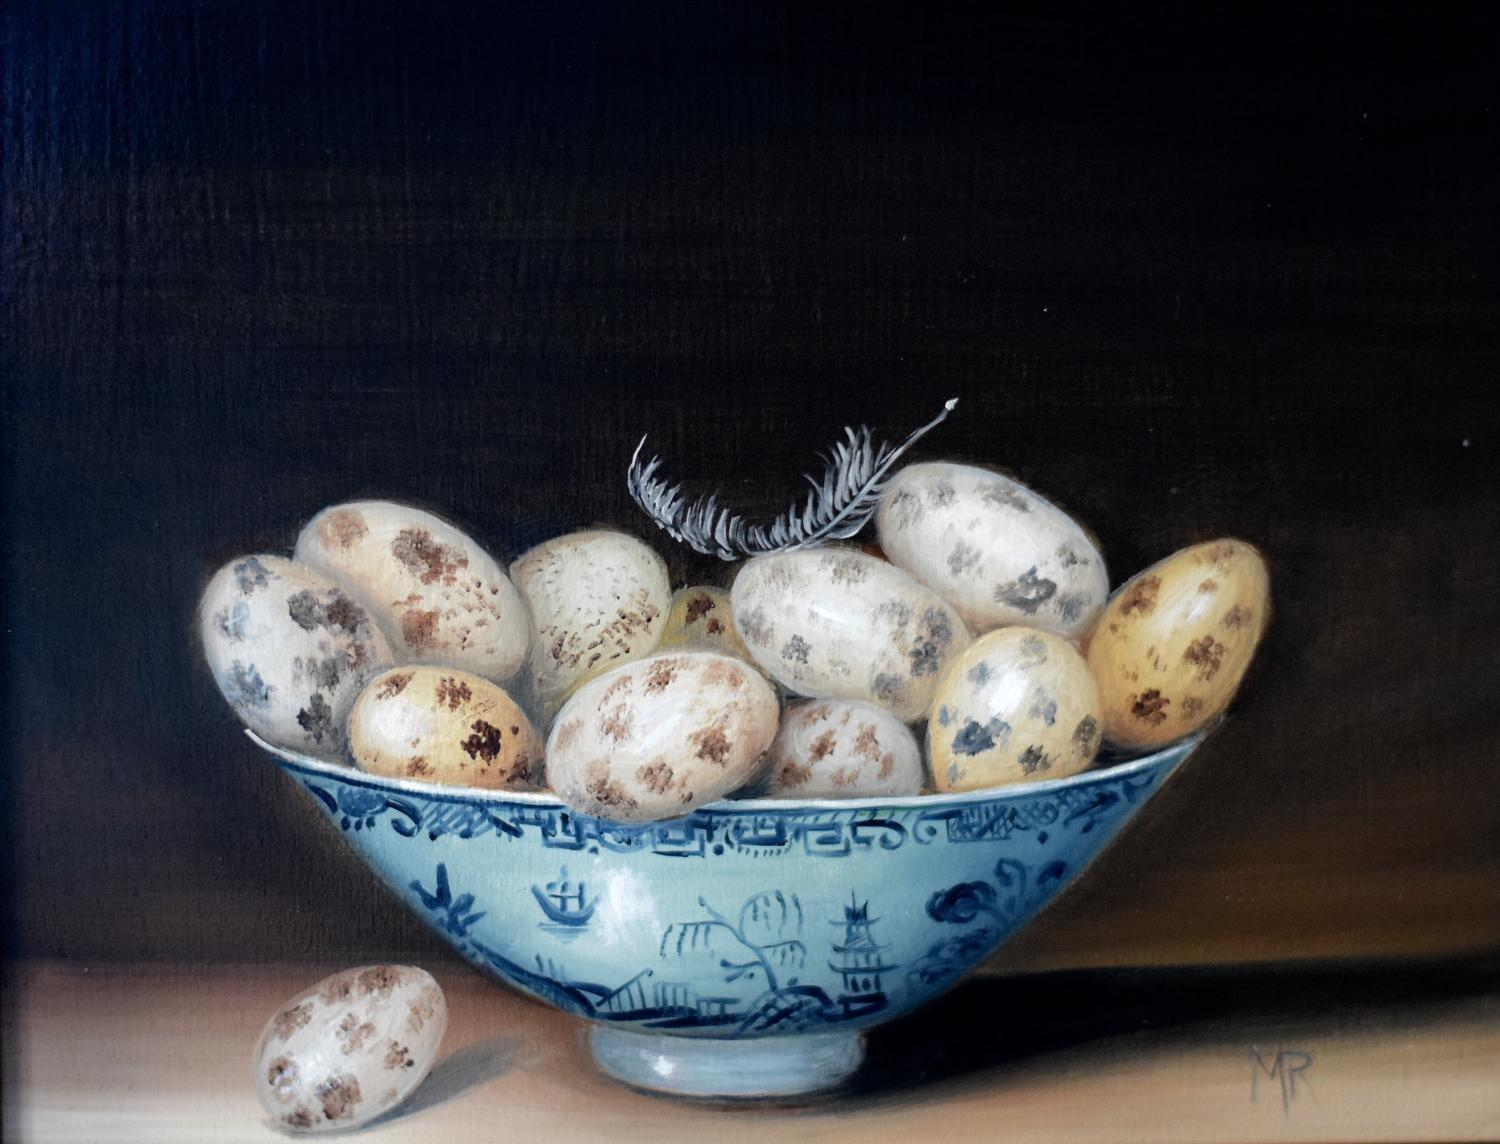 A bowl of quail's eggs